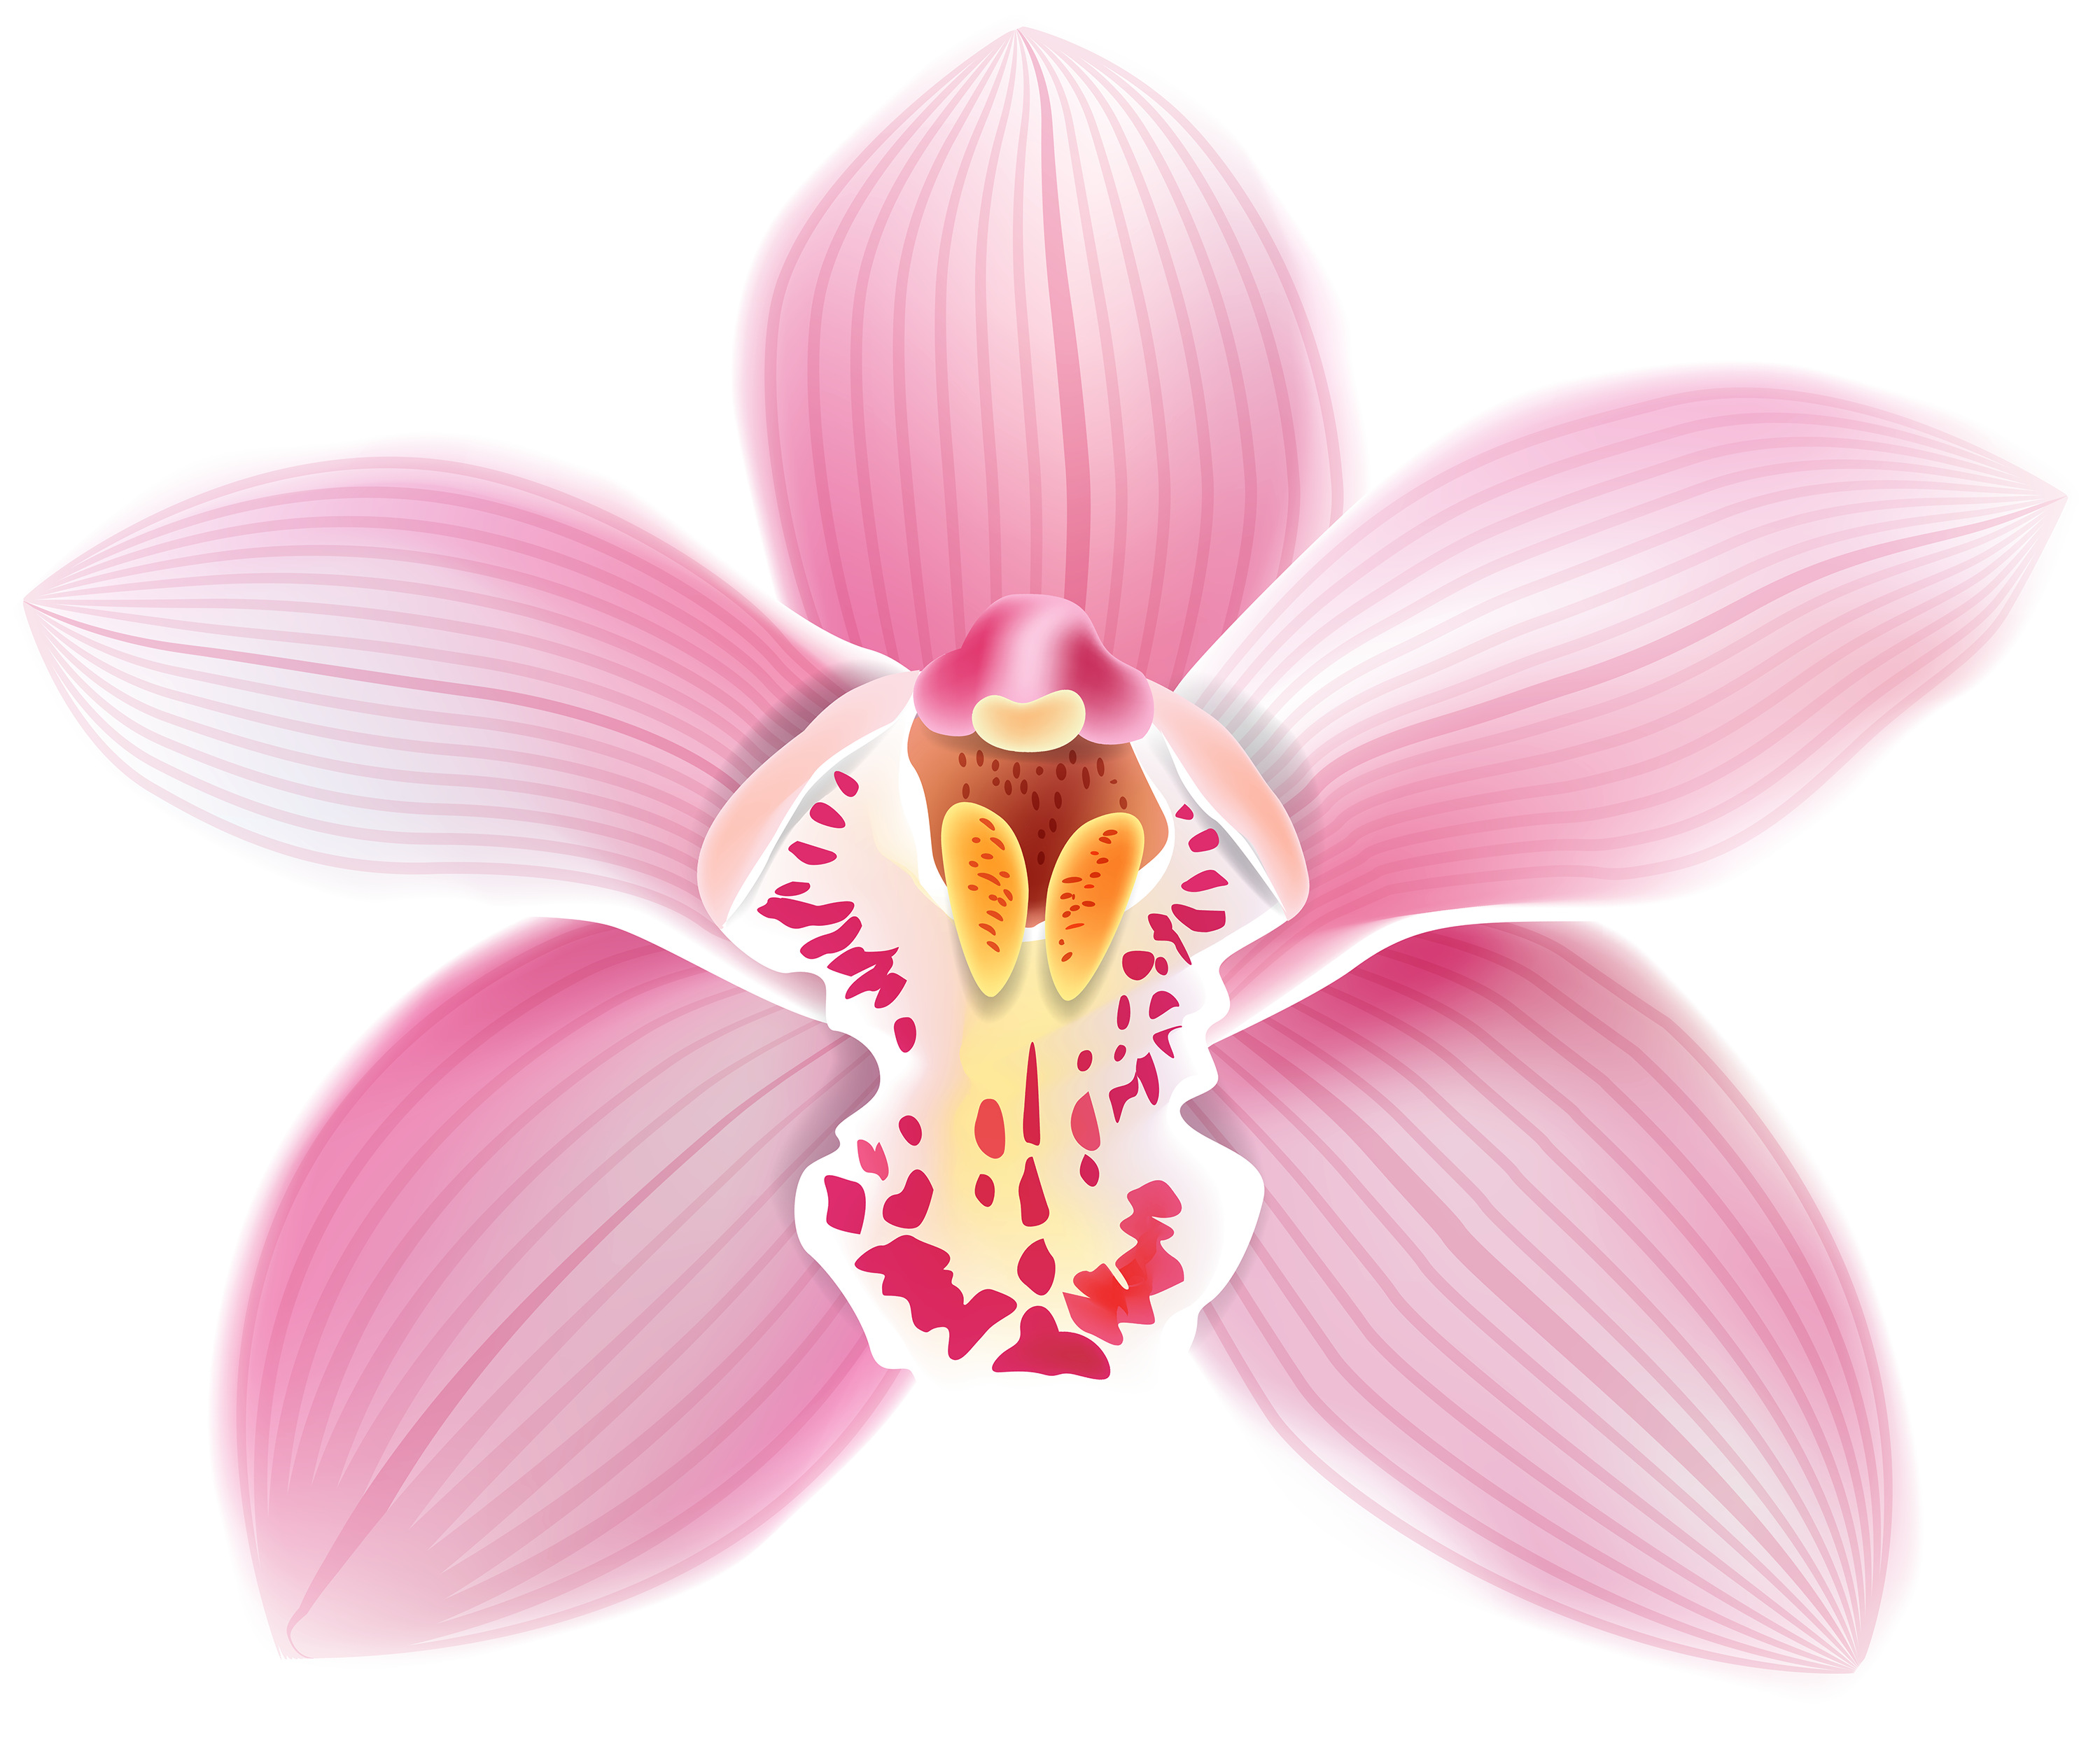 Orchid clipart #4, Download drawings